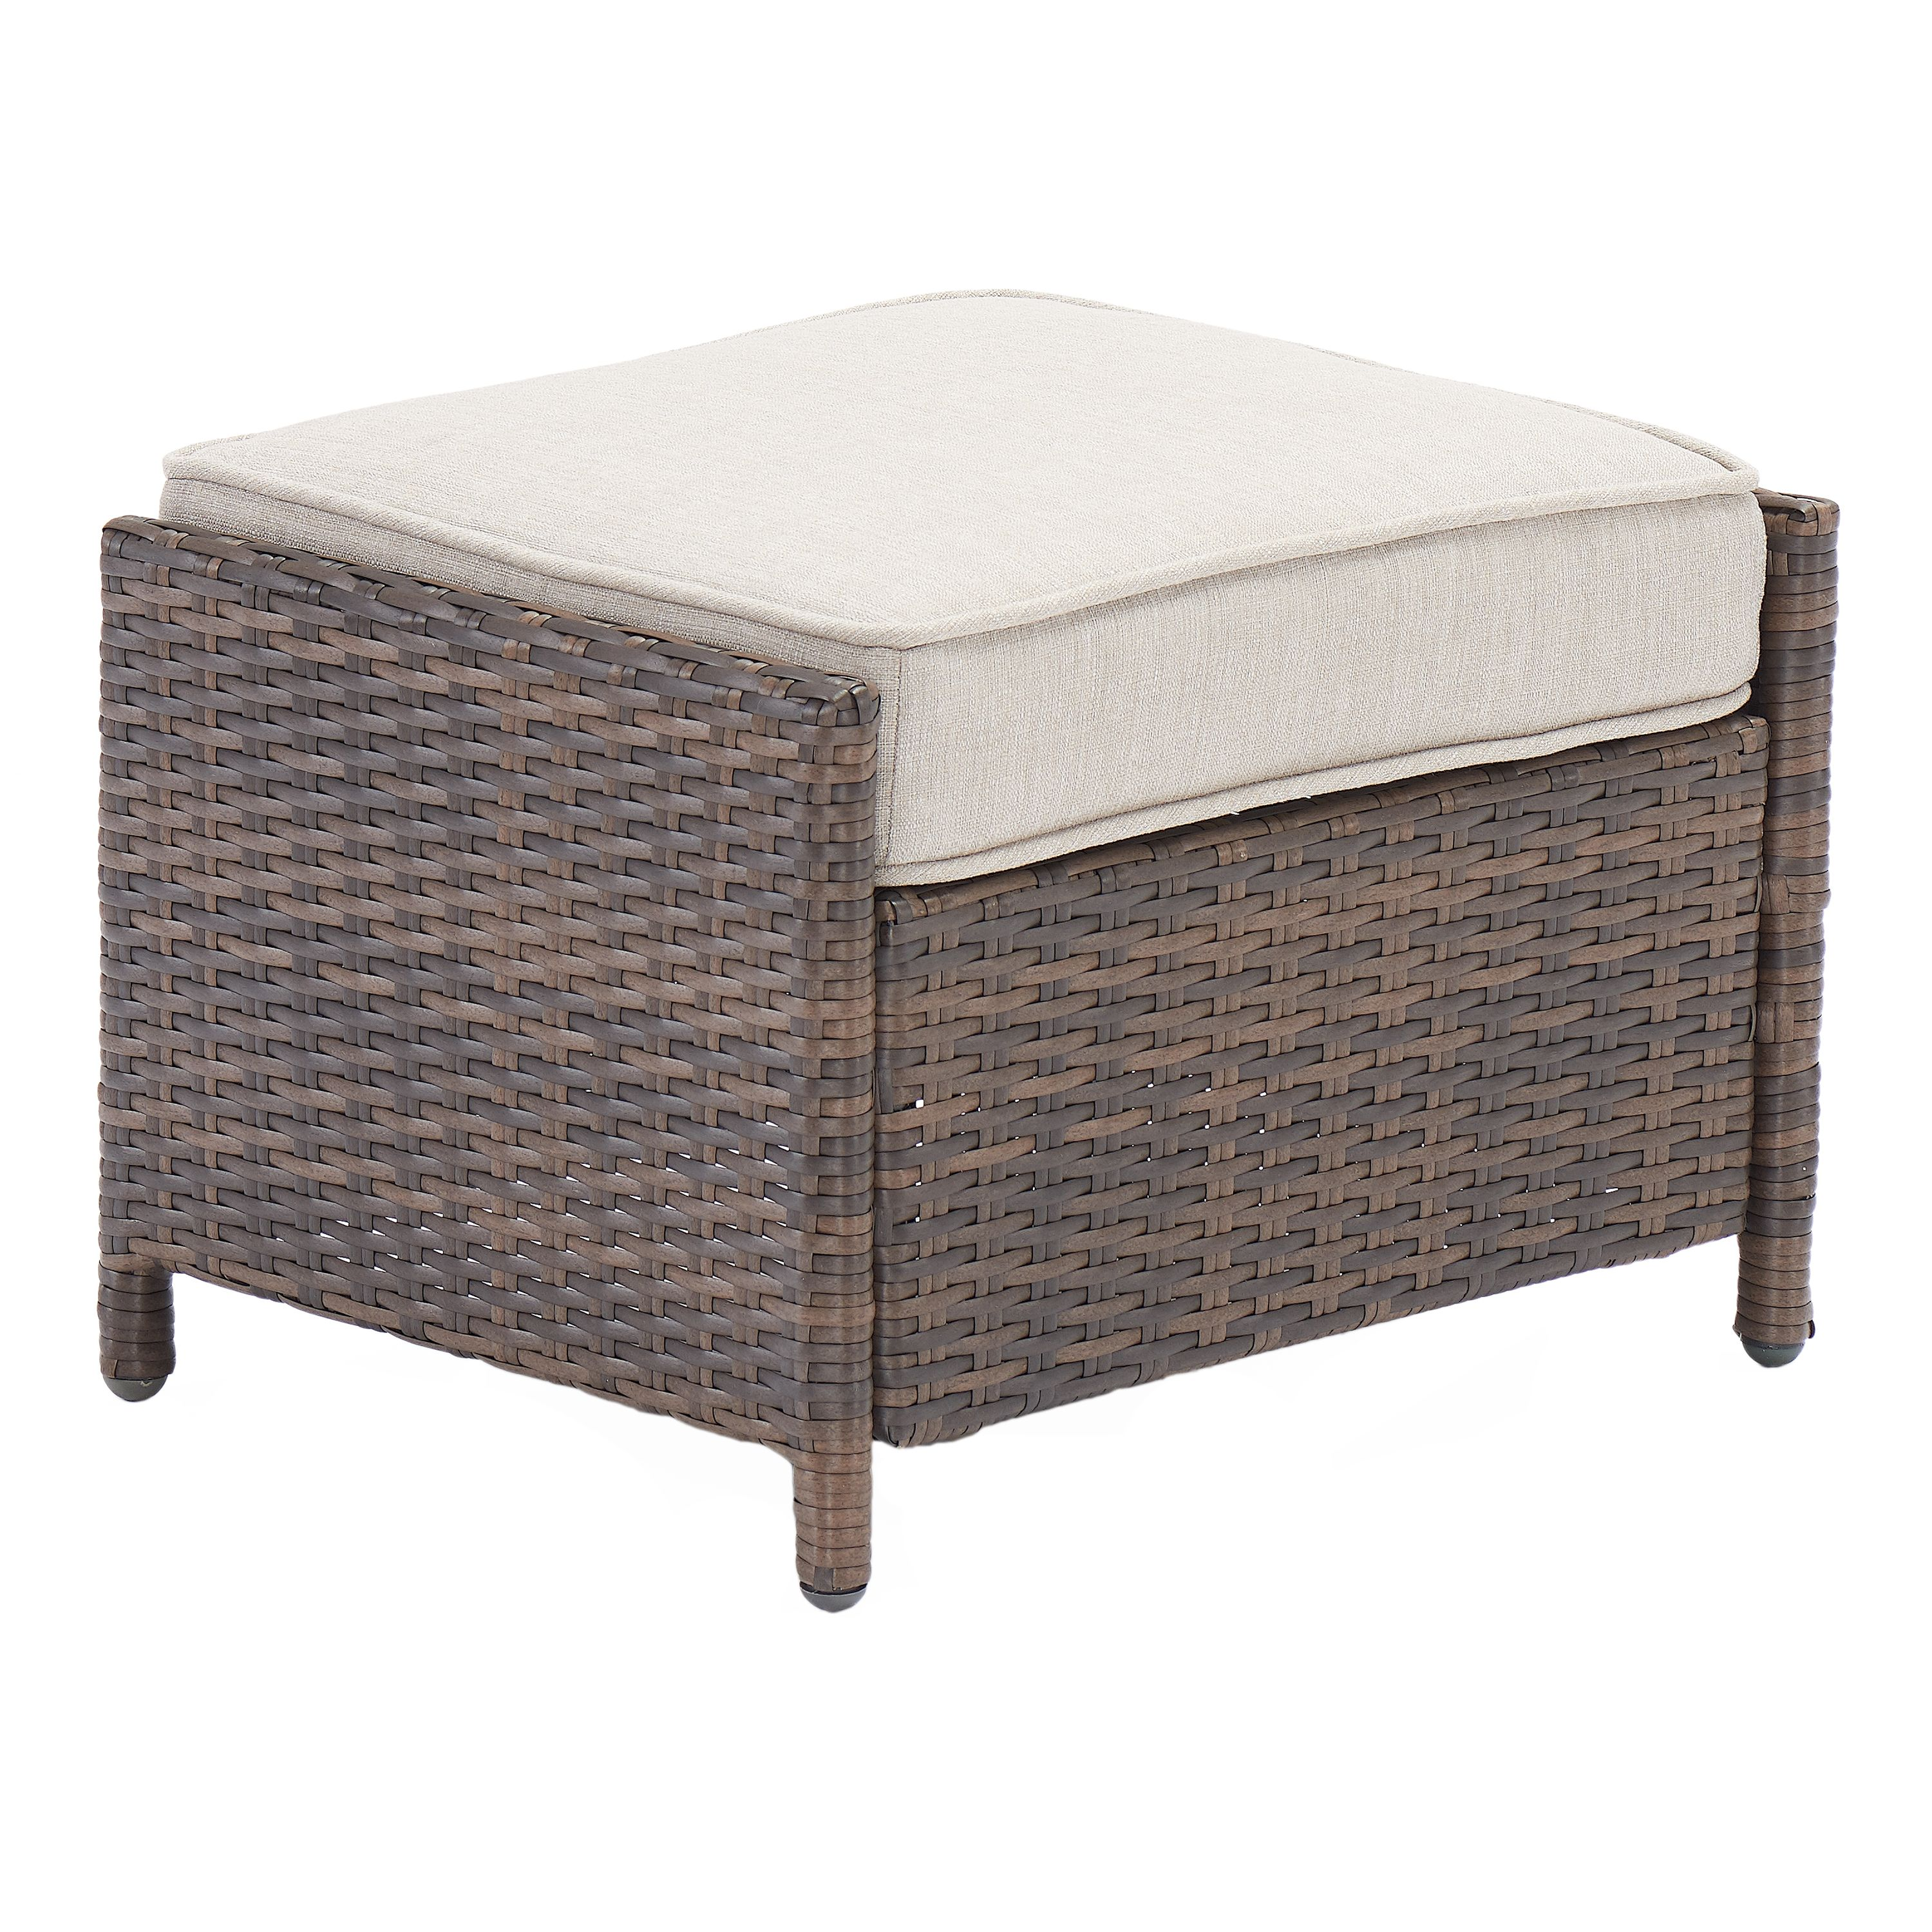 Better Homes & Gardens Mayers Bay 2-Piece Ottoman Set with Tan Cushions